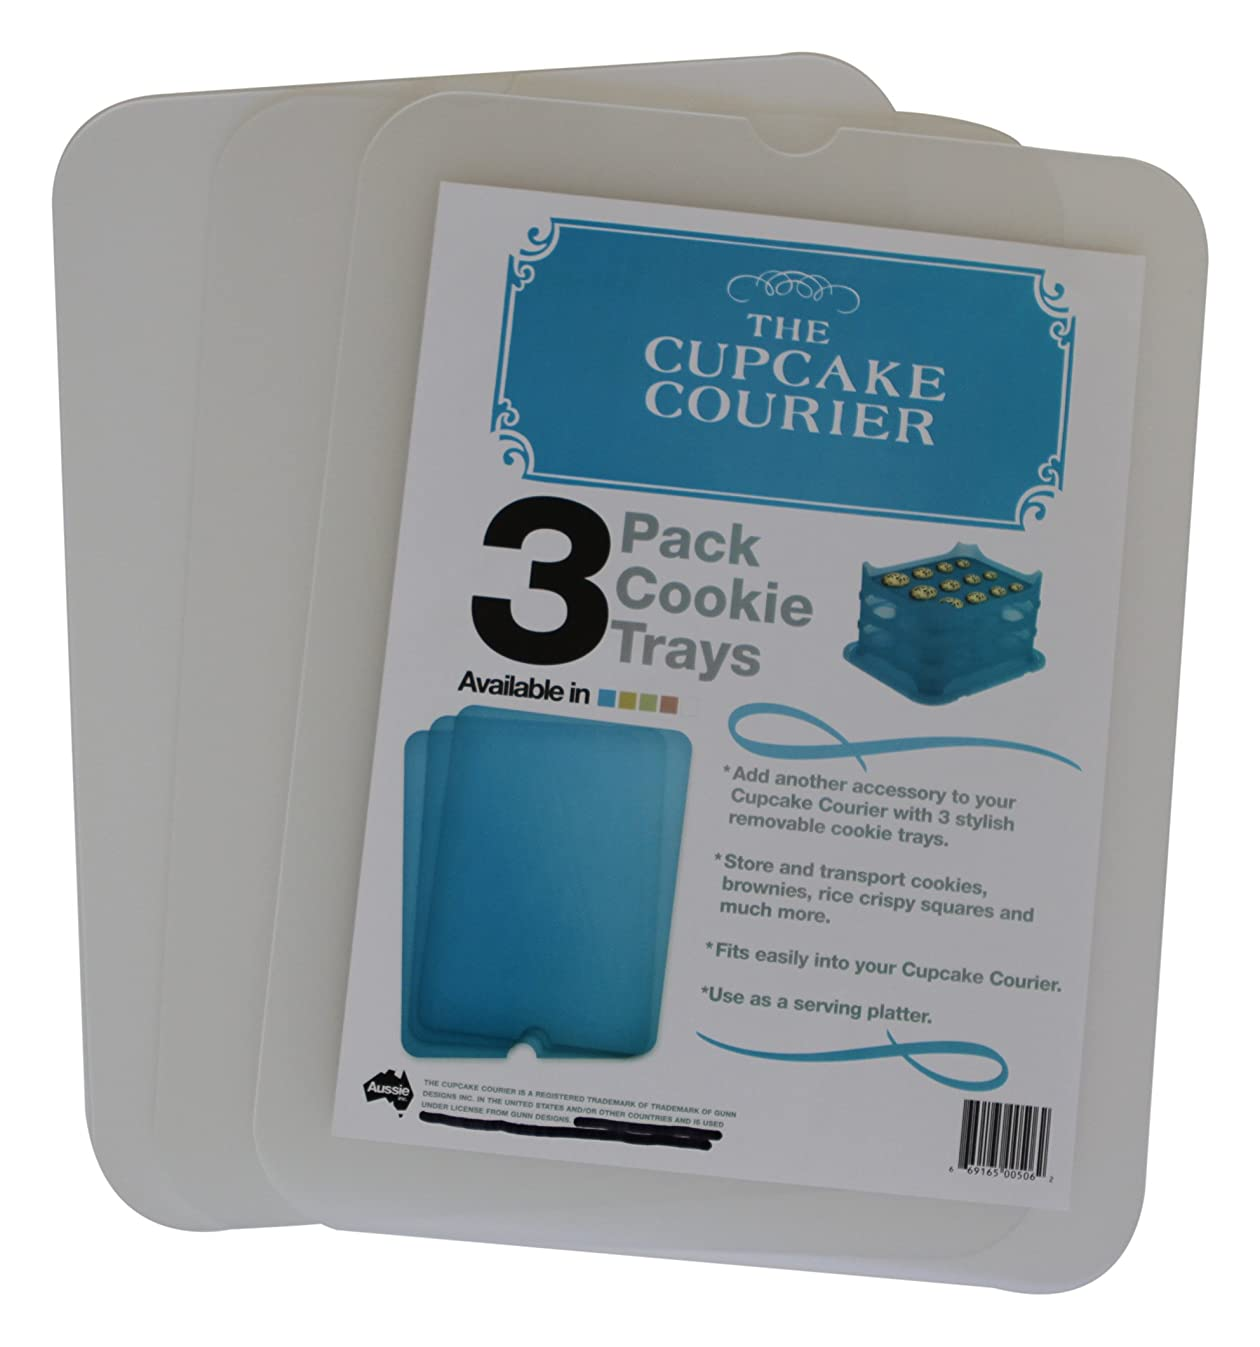 Cupcake Courier G0239 The Cookie Tray 3 Pack, White Translucent, Crystal Clear